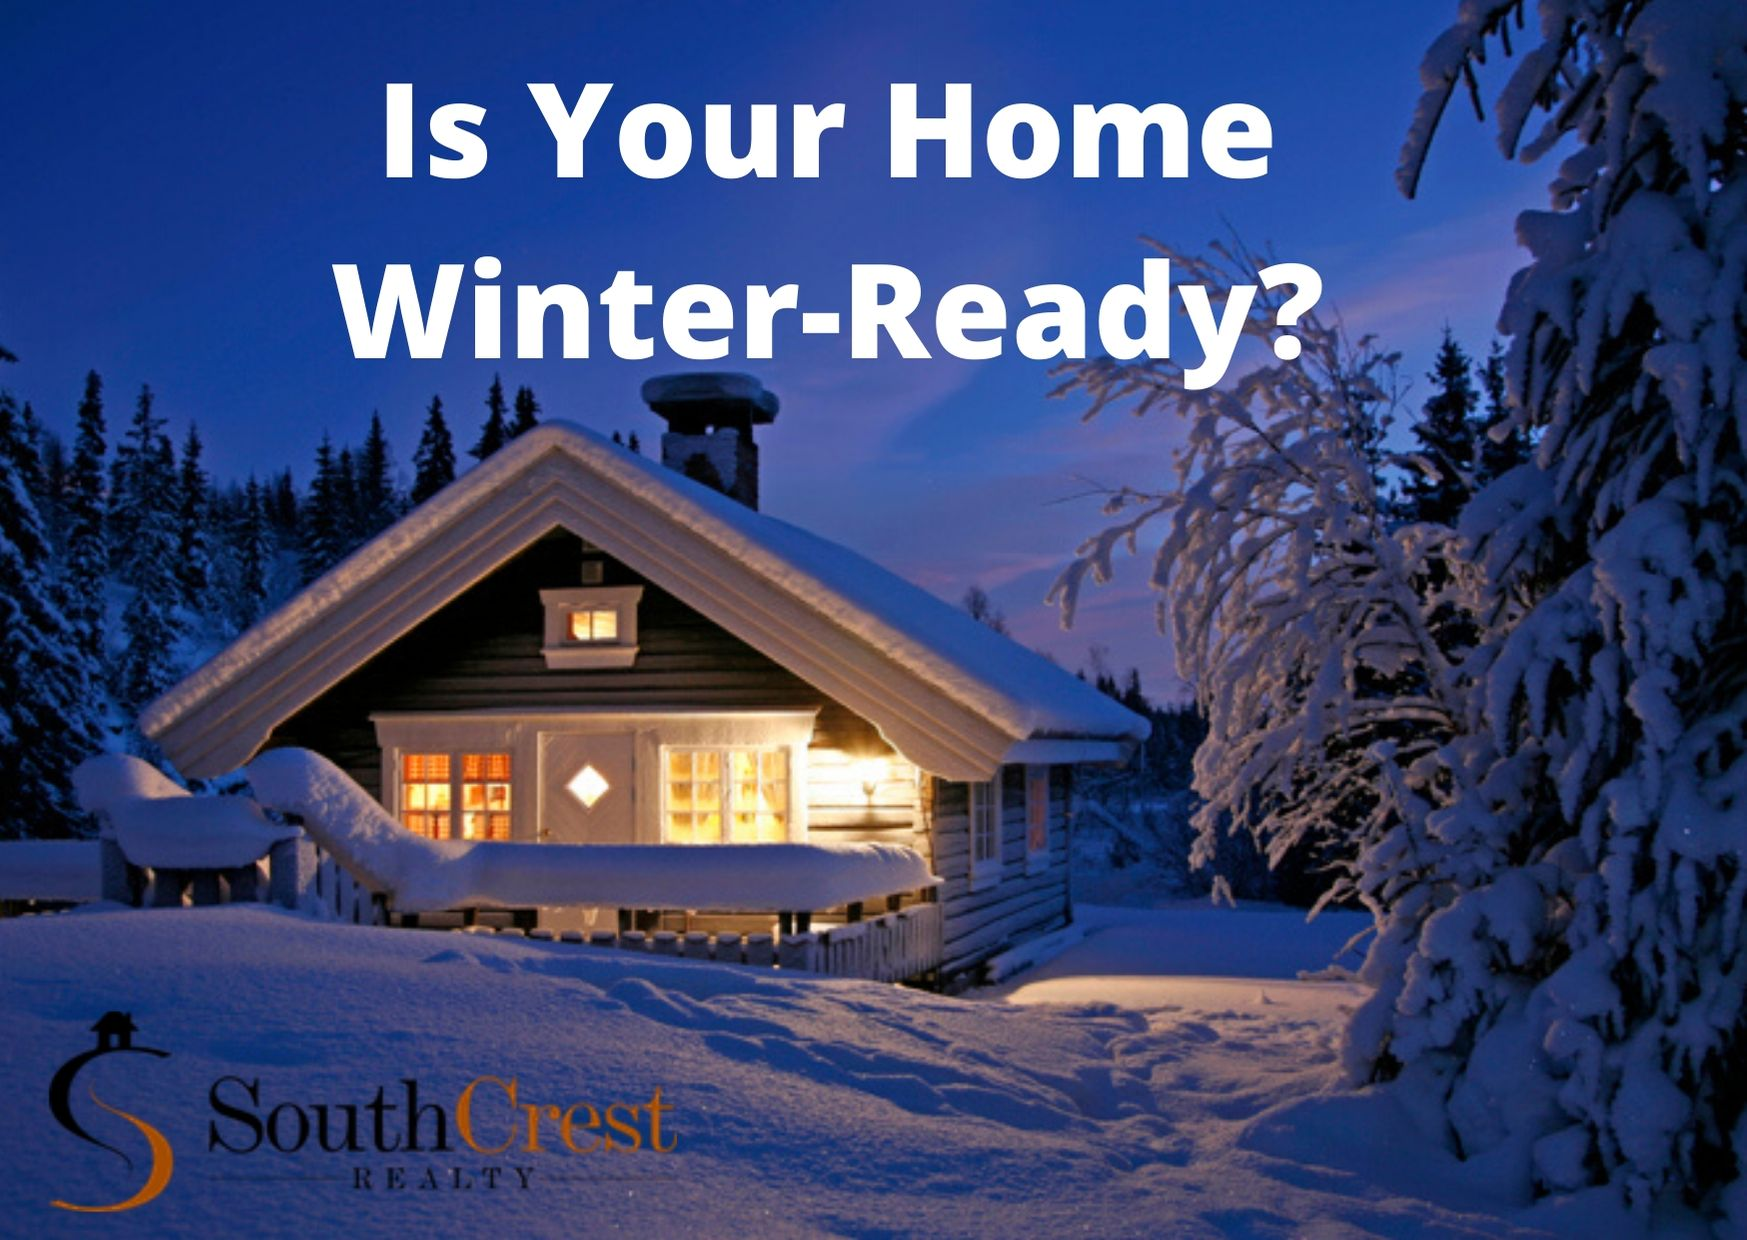 5 EASY STEPS TO A WINTER-READY HOME